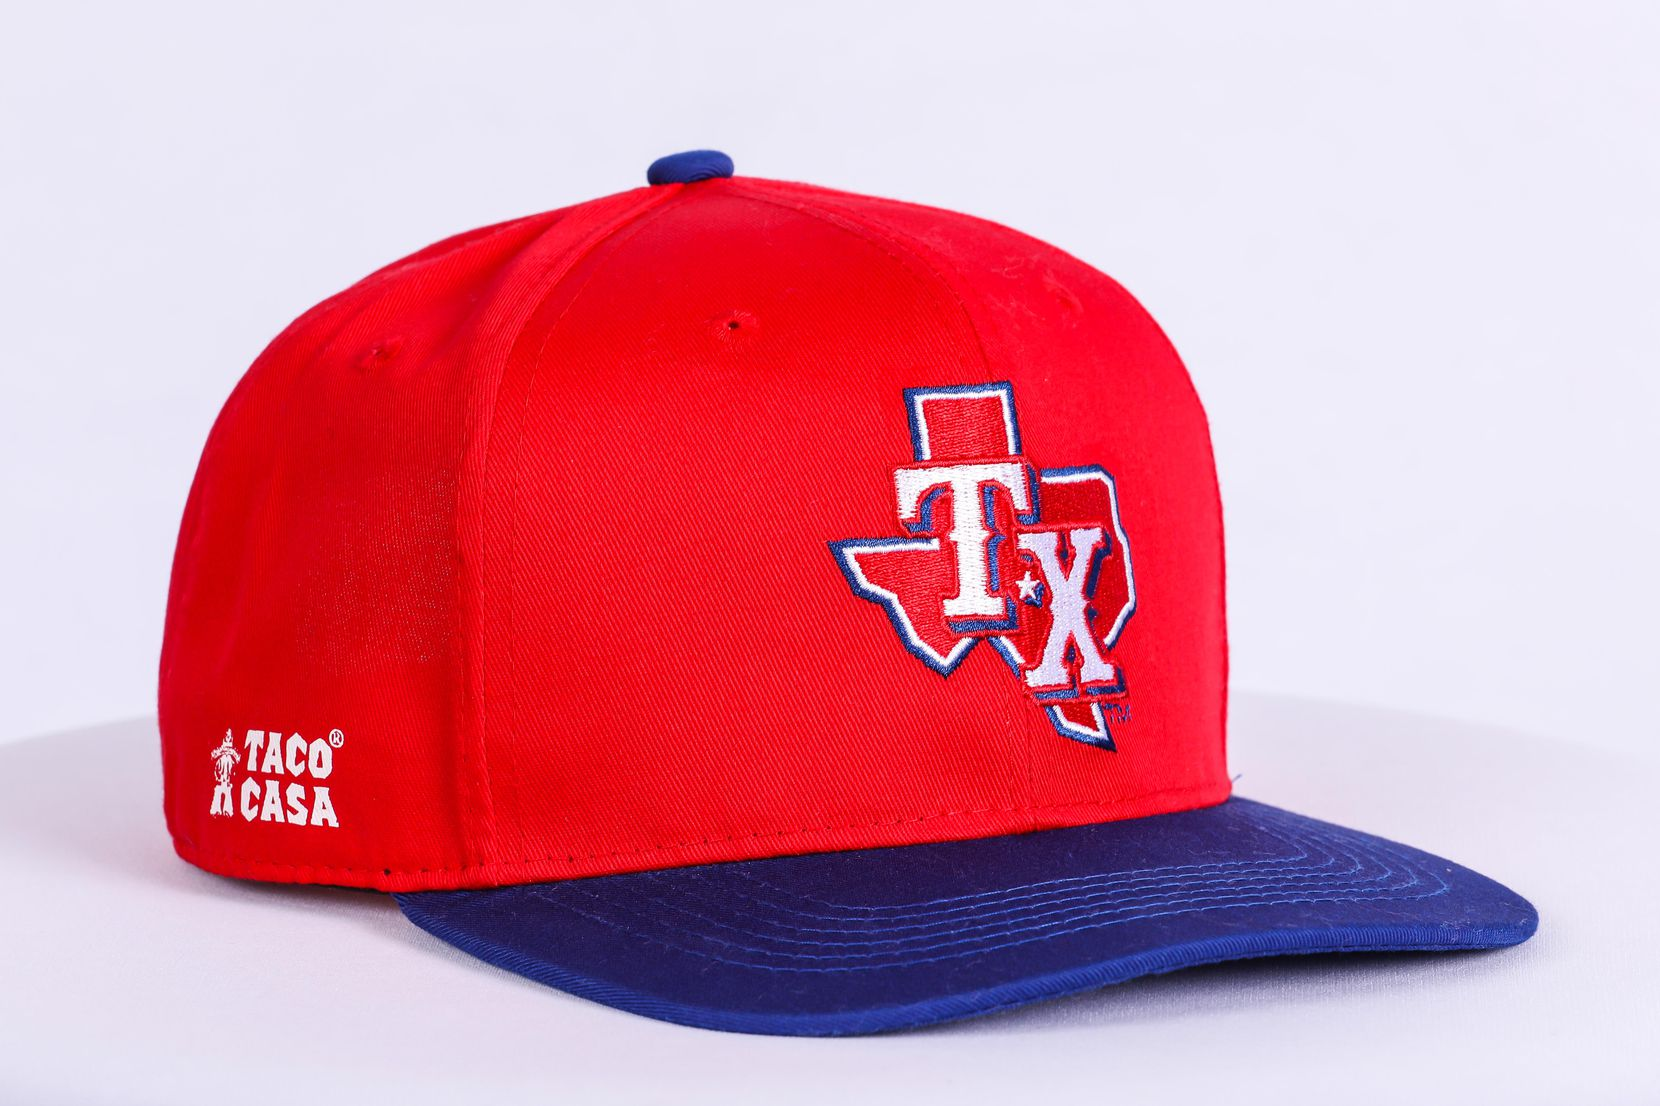 Replica Rangers hat to be handed out to fans on April 3.